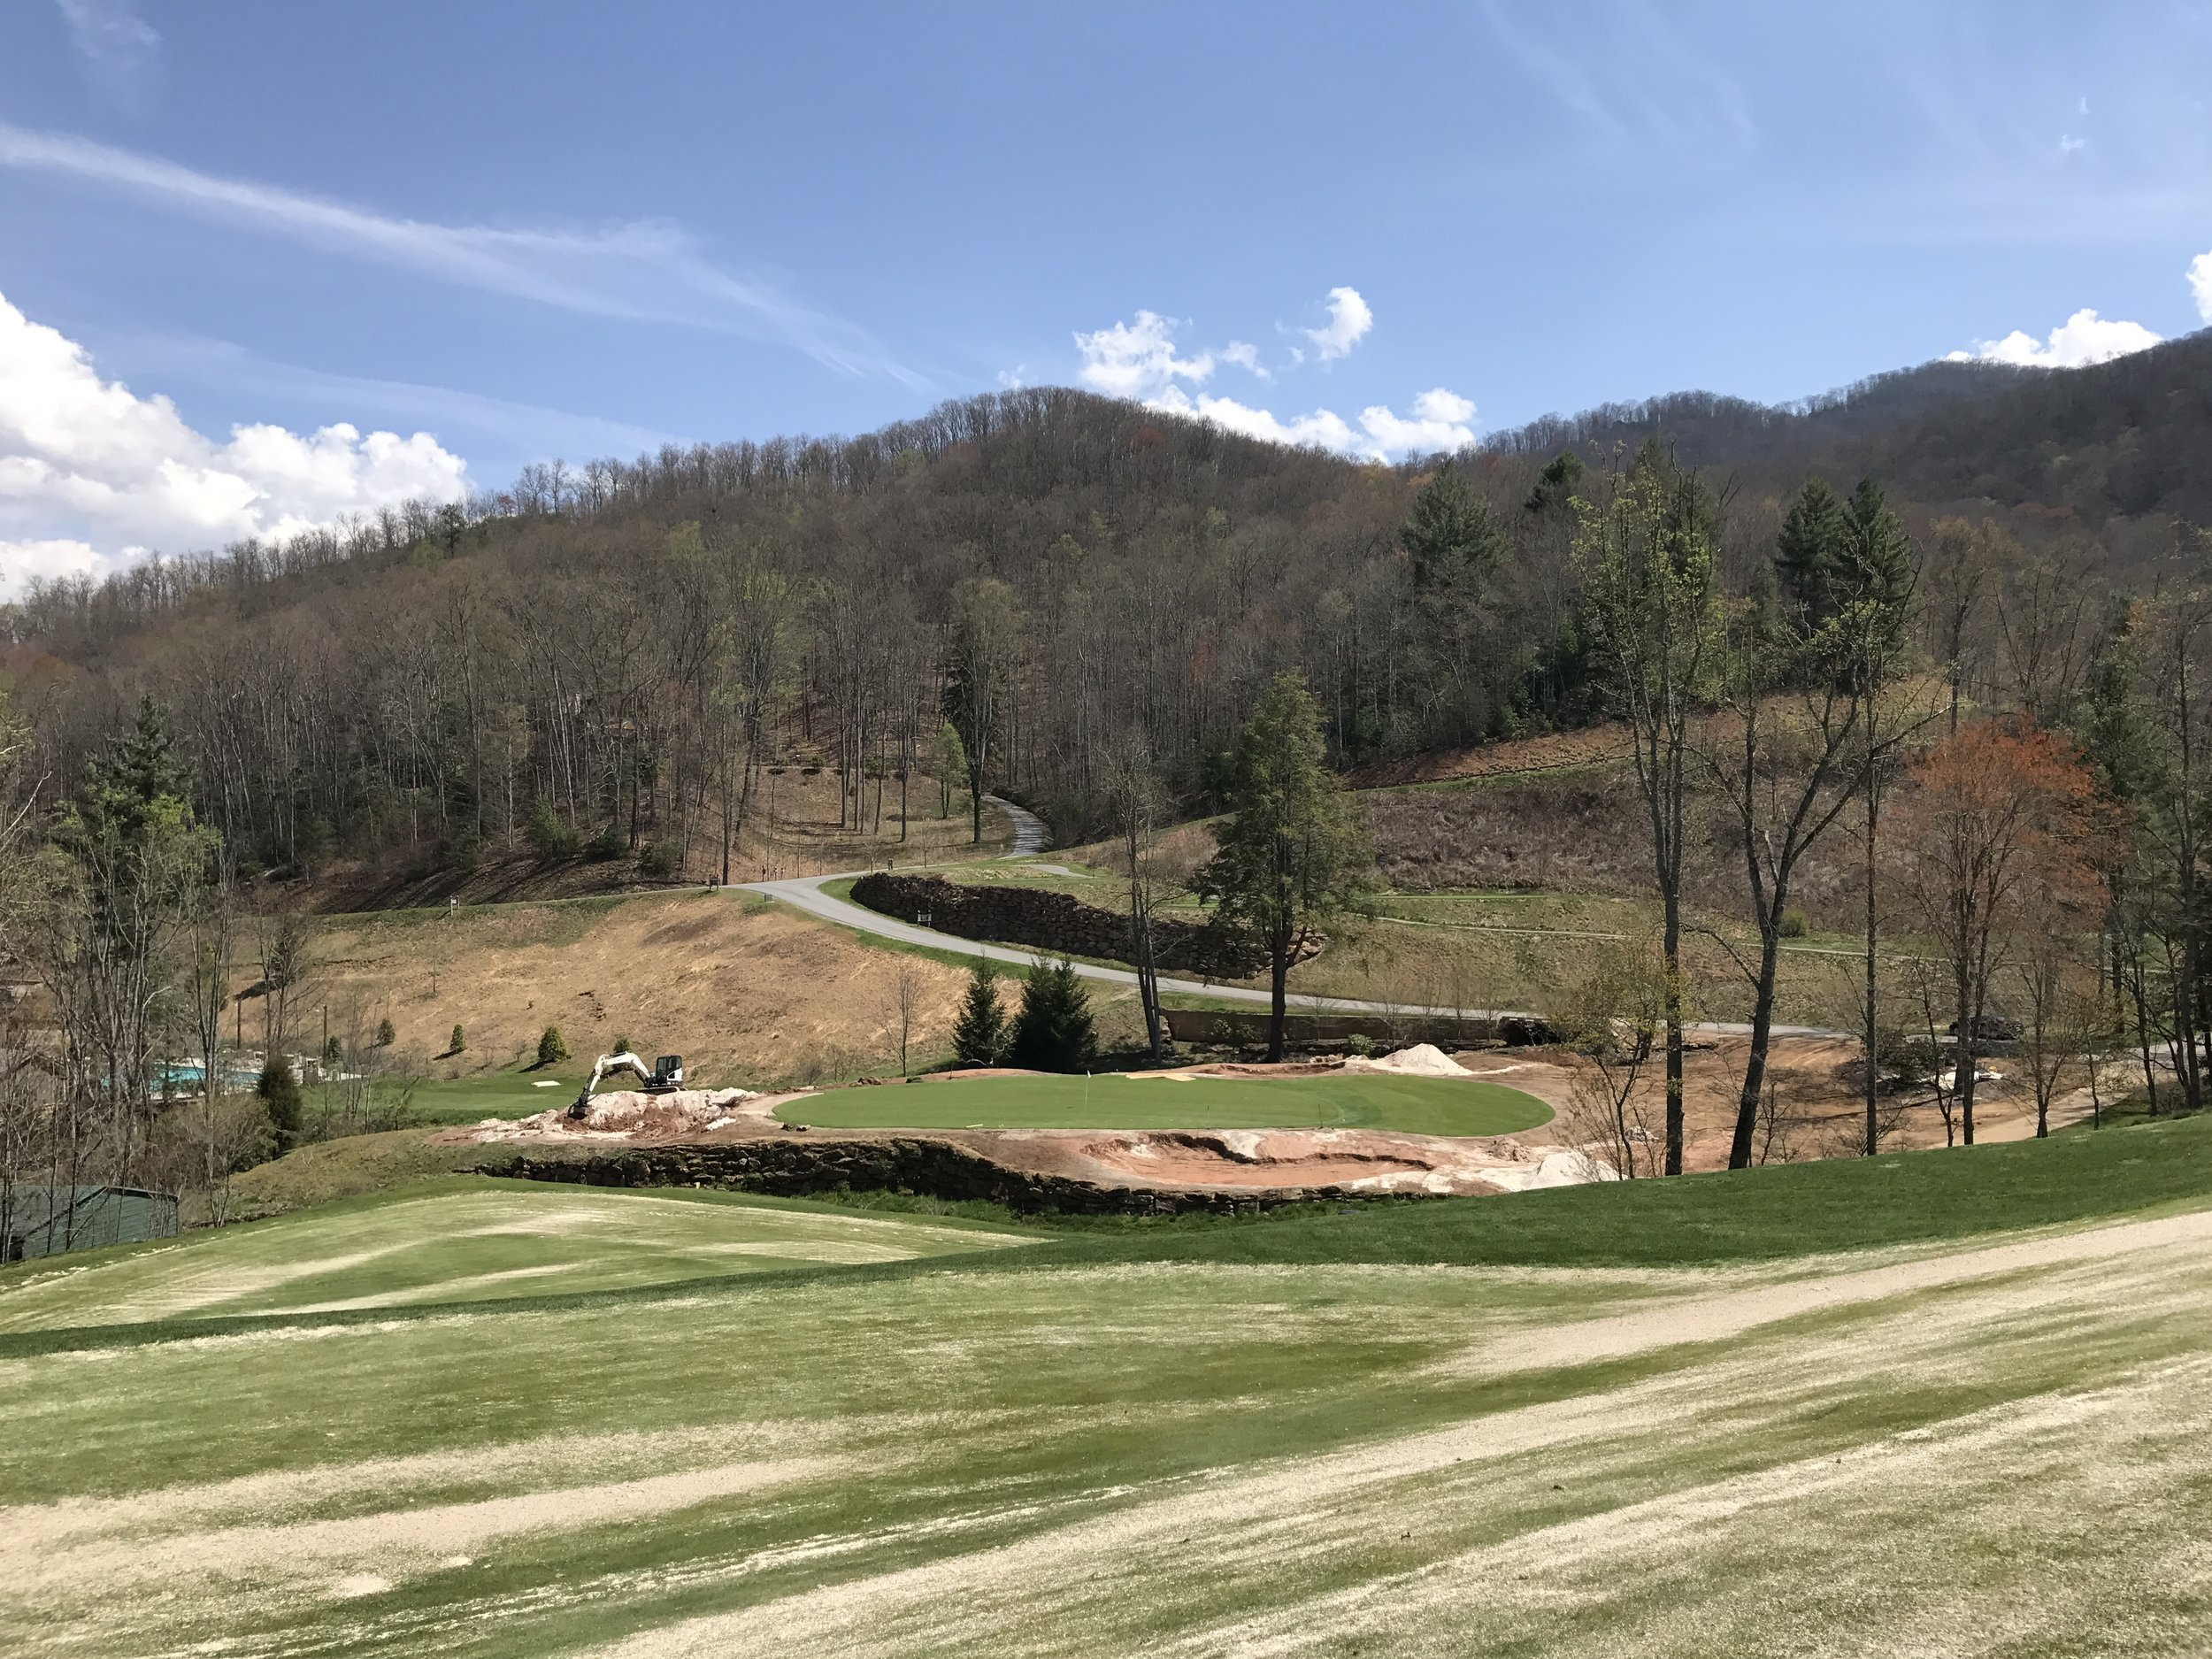 After image just as work is finishing up. The two bunkers are complete, and the 3rd on the left is getting filled in.